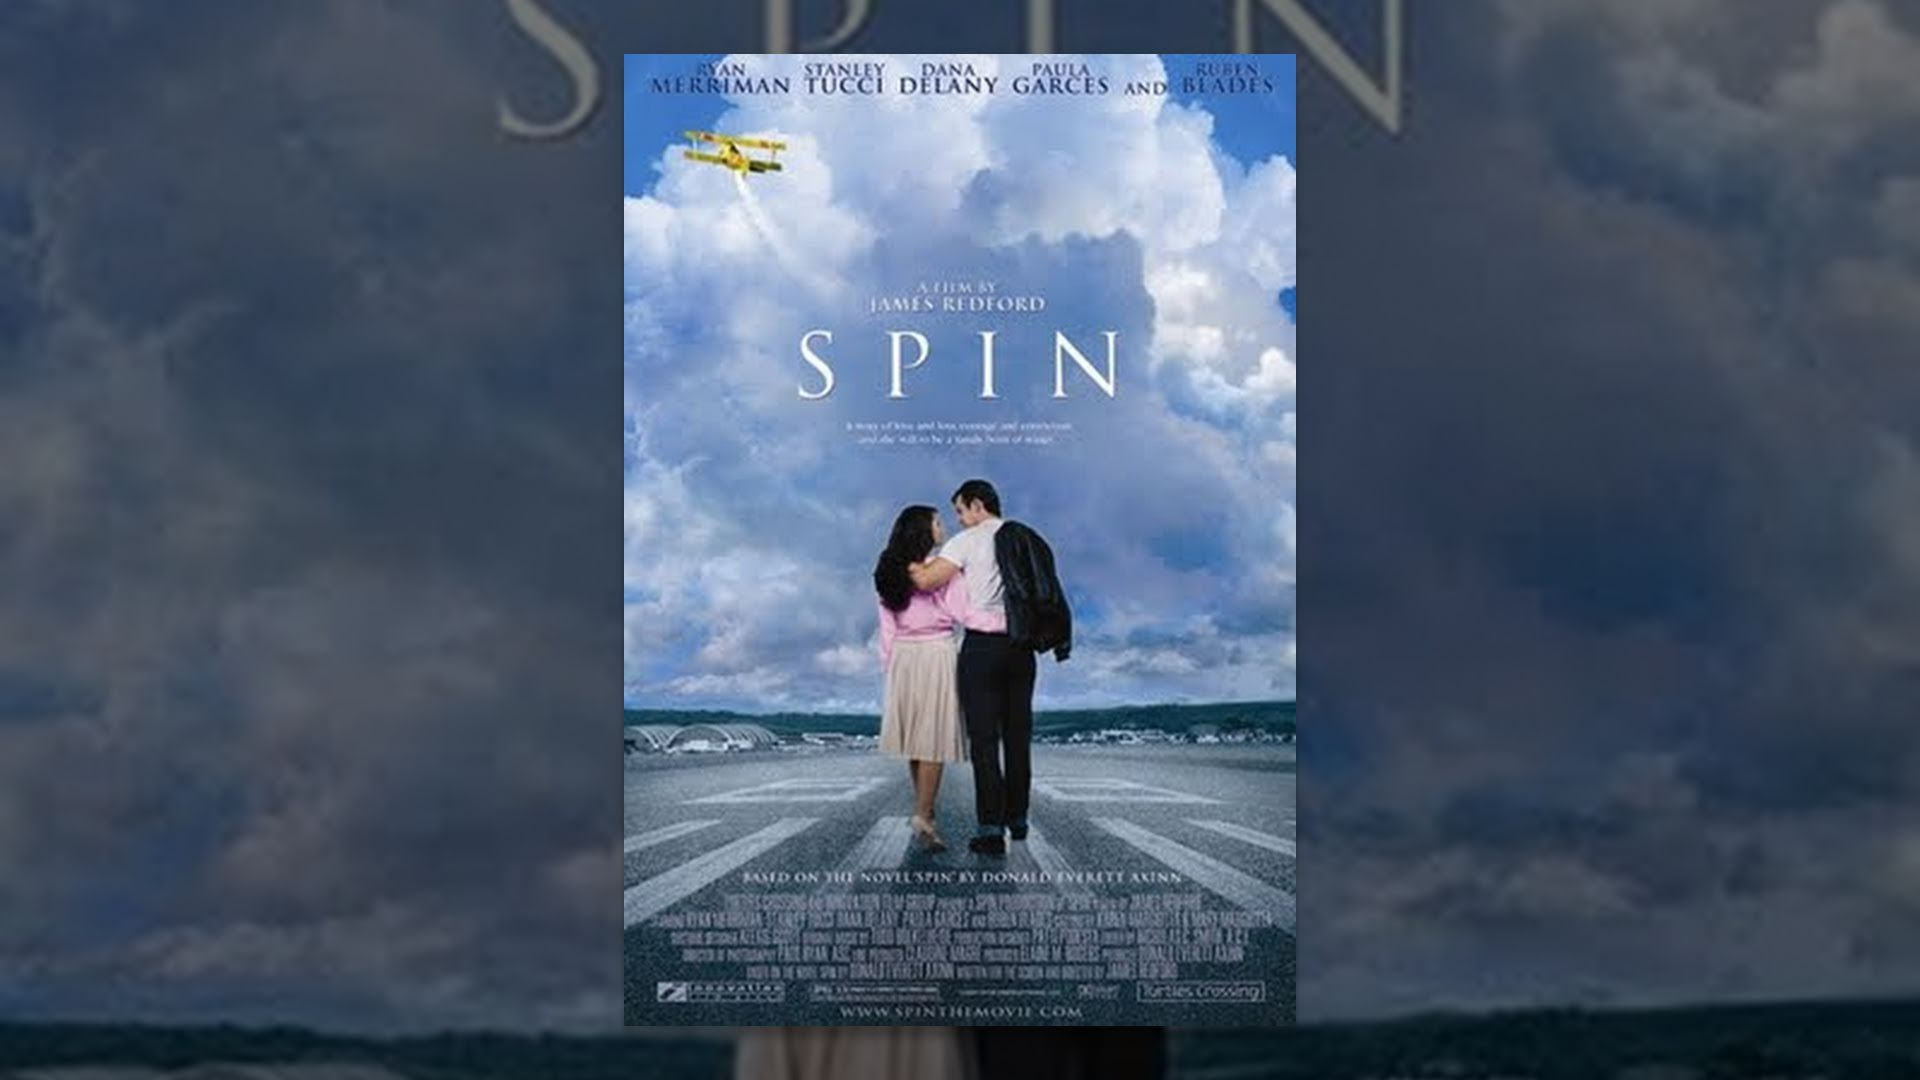 Spin Film Completo Italiano Romantico Youtube Film Romantici Film Youtube